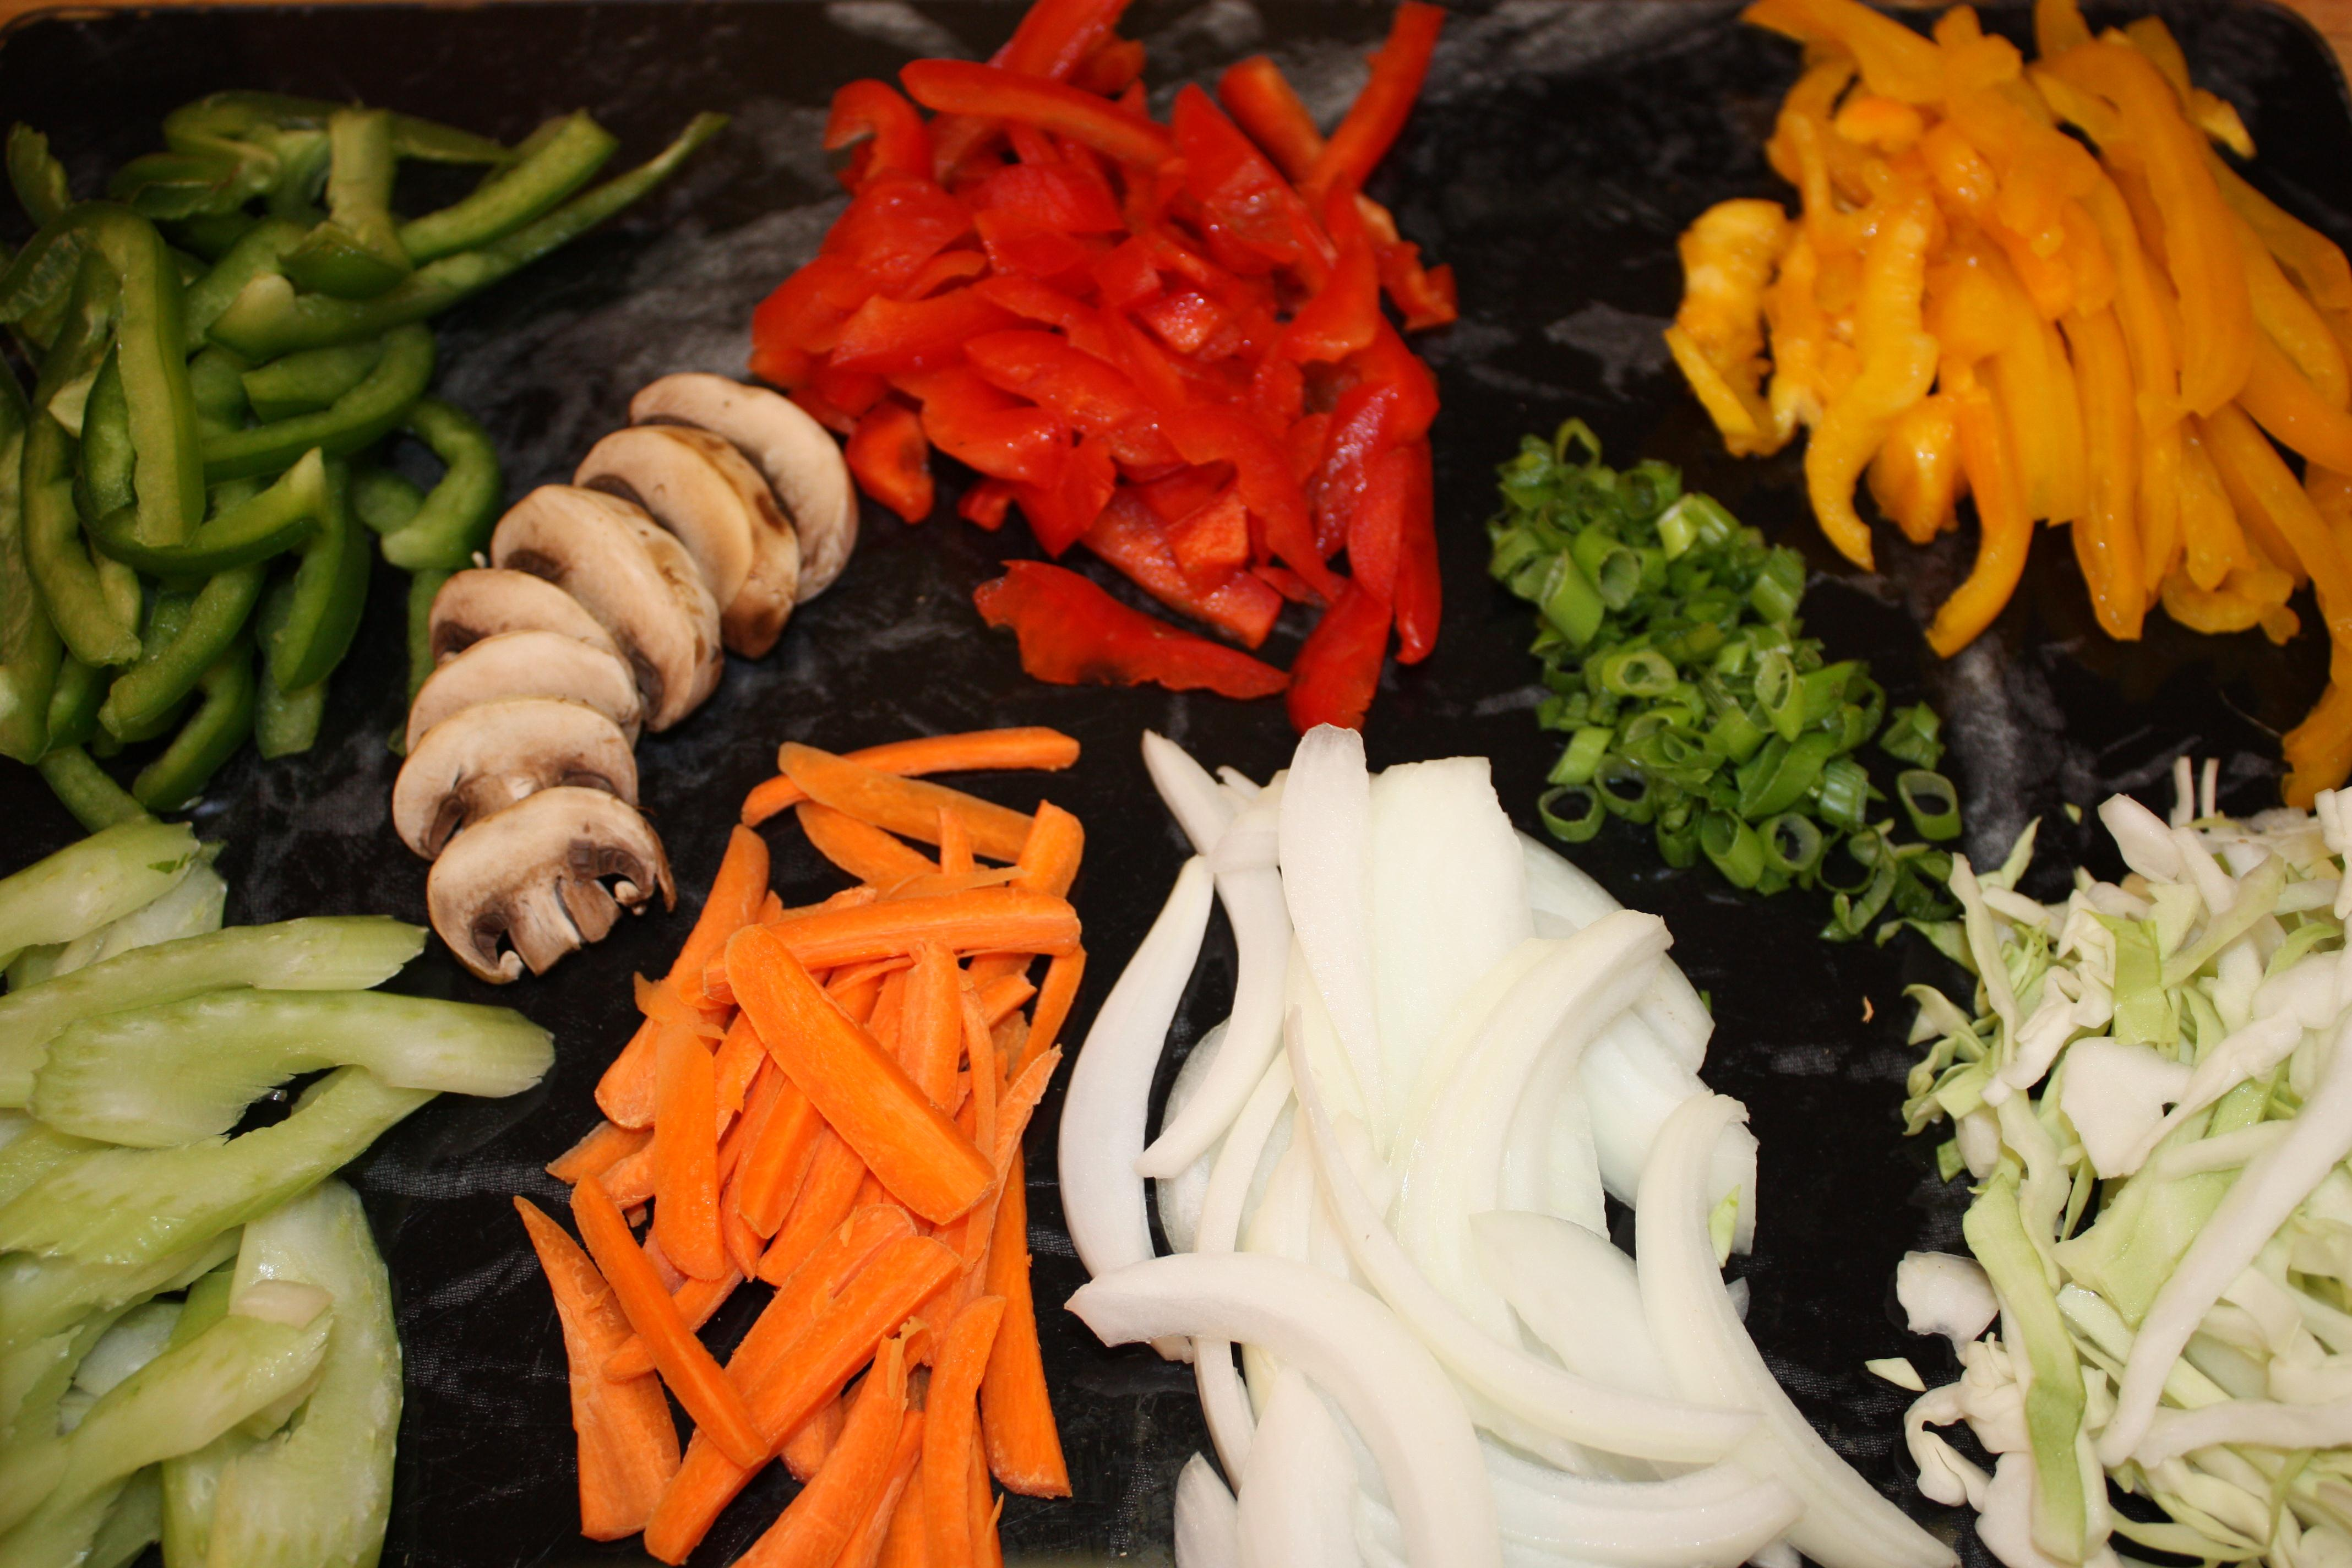 sliced and julienne vegetable display